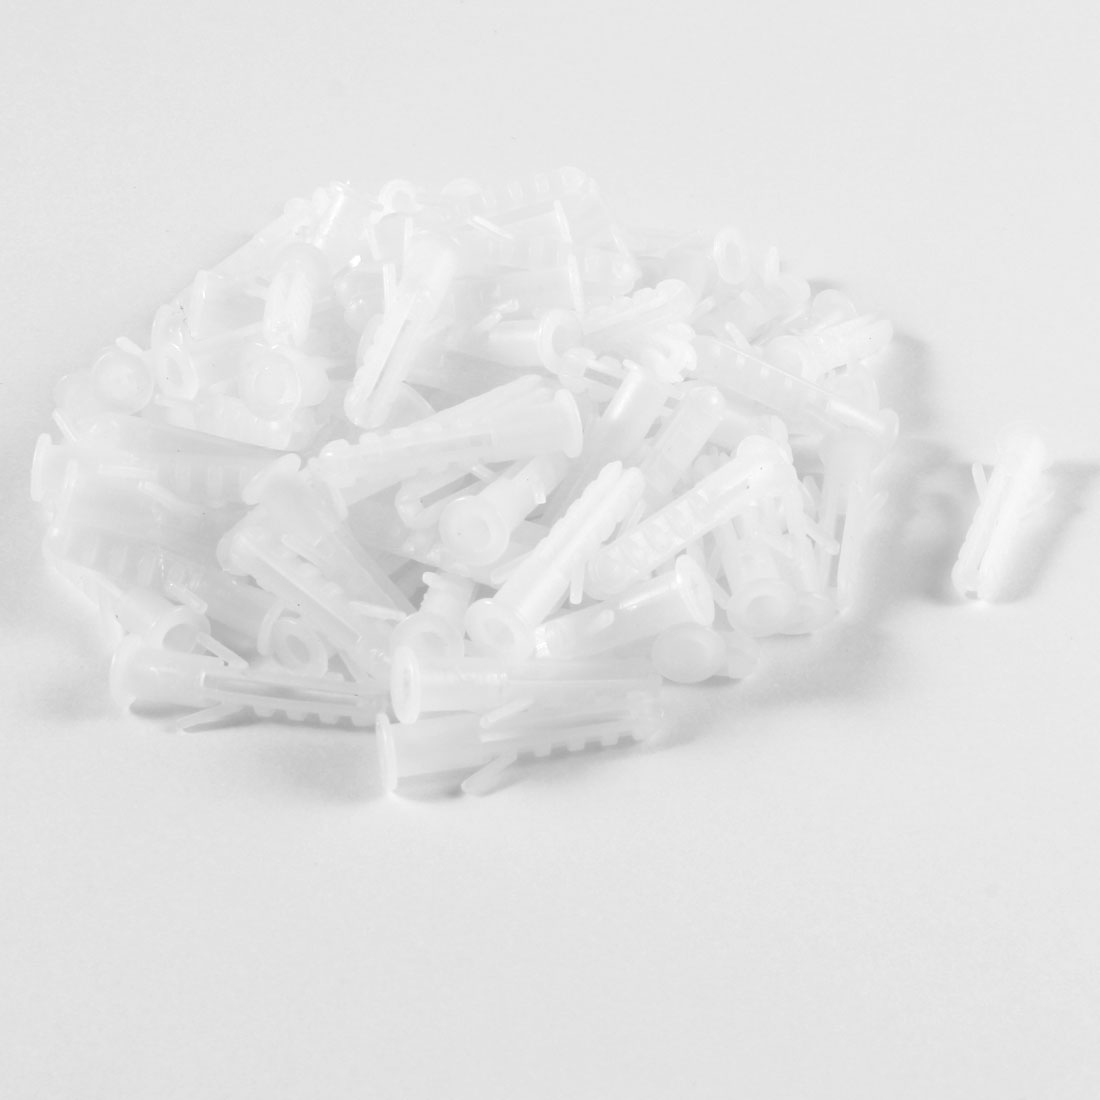 100 Pcs 6mm Diameter White Plastic Rimless Expansion Wall Connector